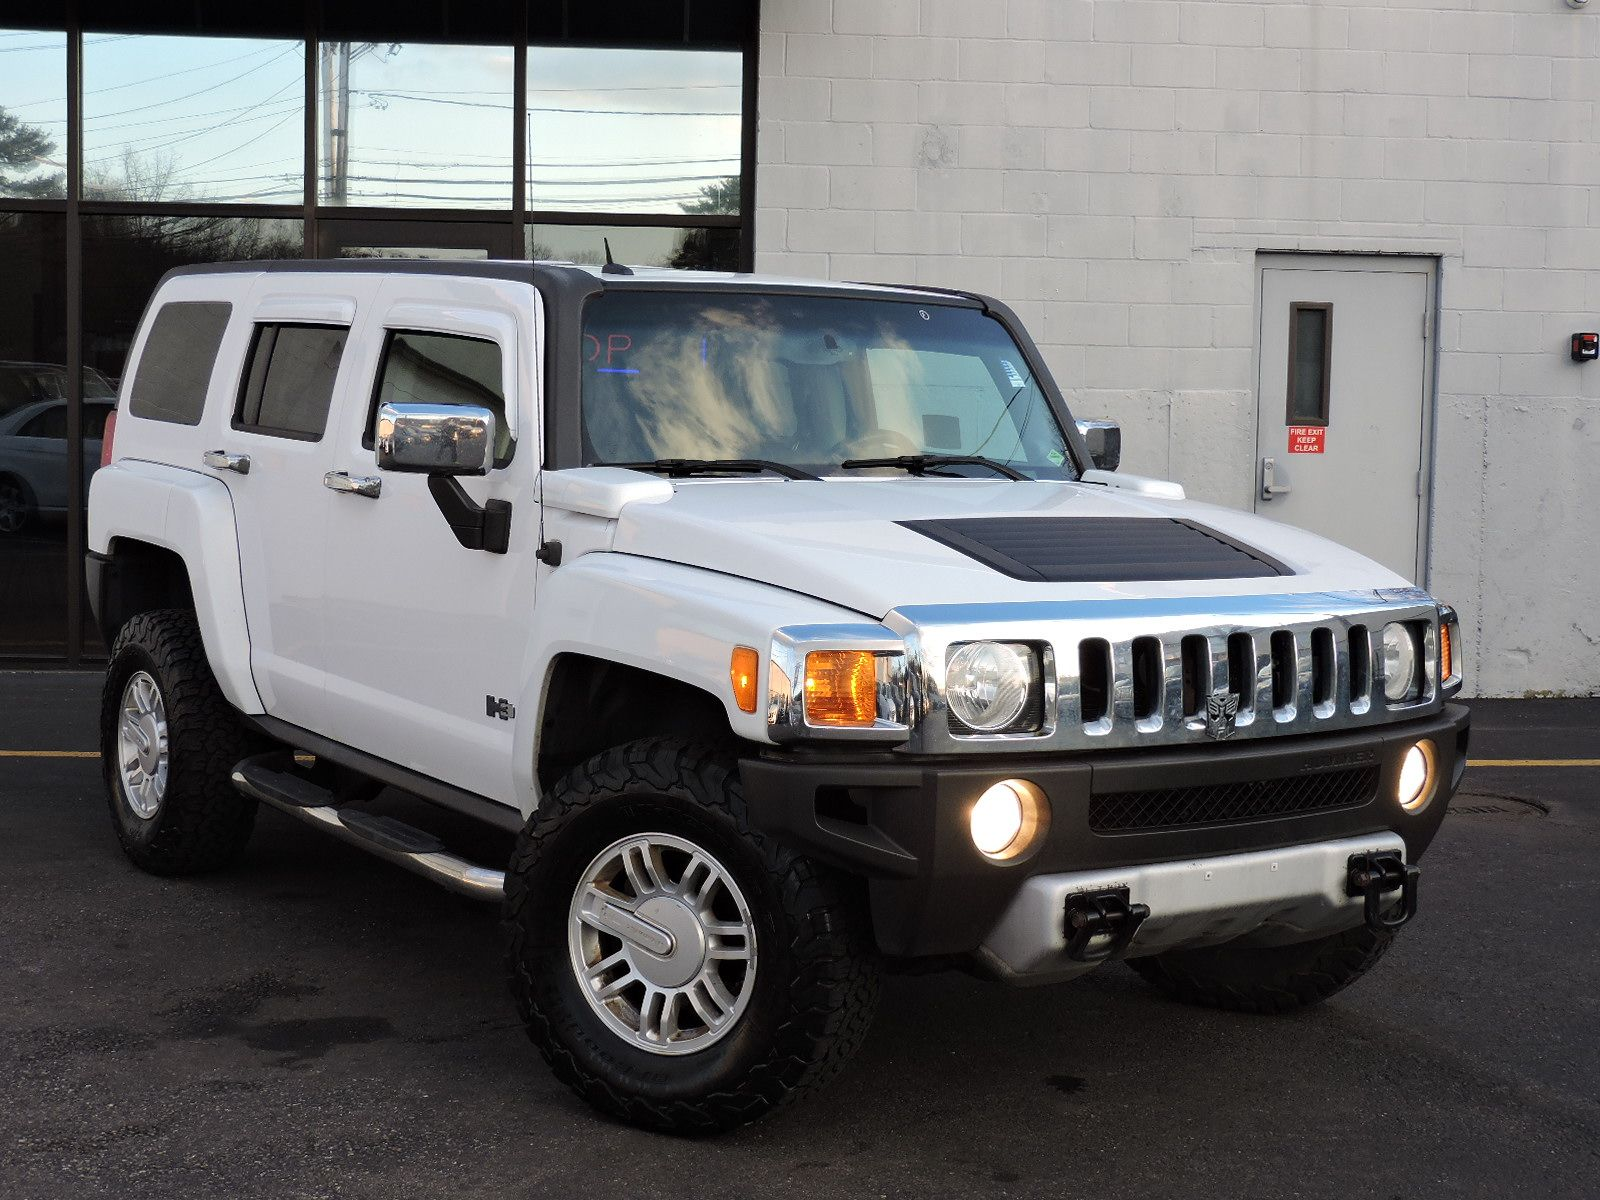 Unhinged: Bringing Hummer Back As An Electric Vehicle Brand?